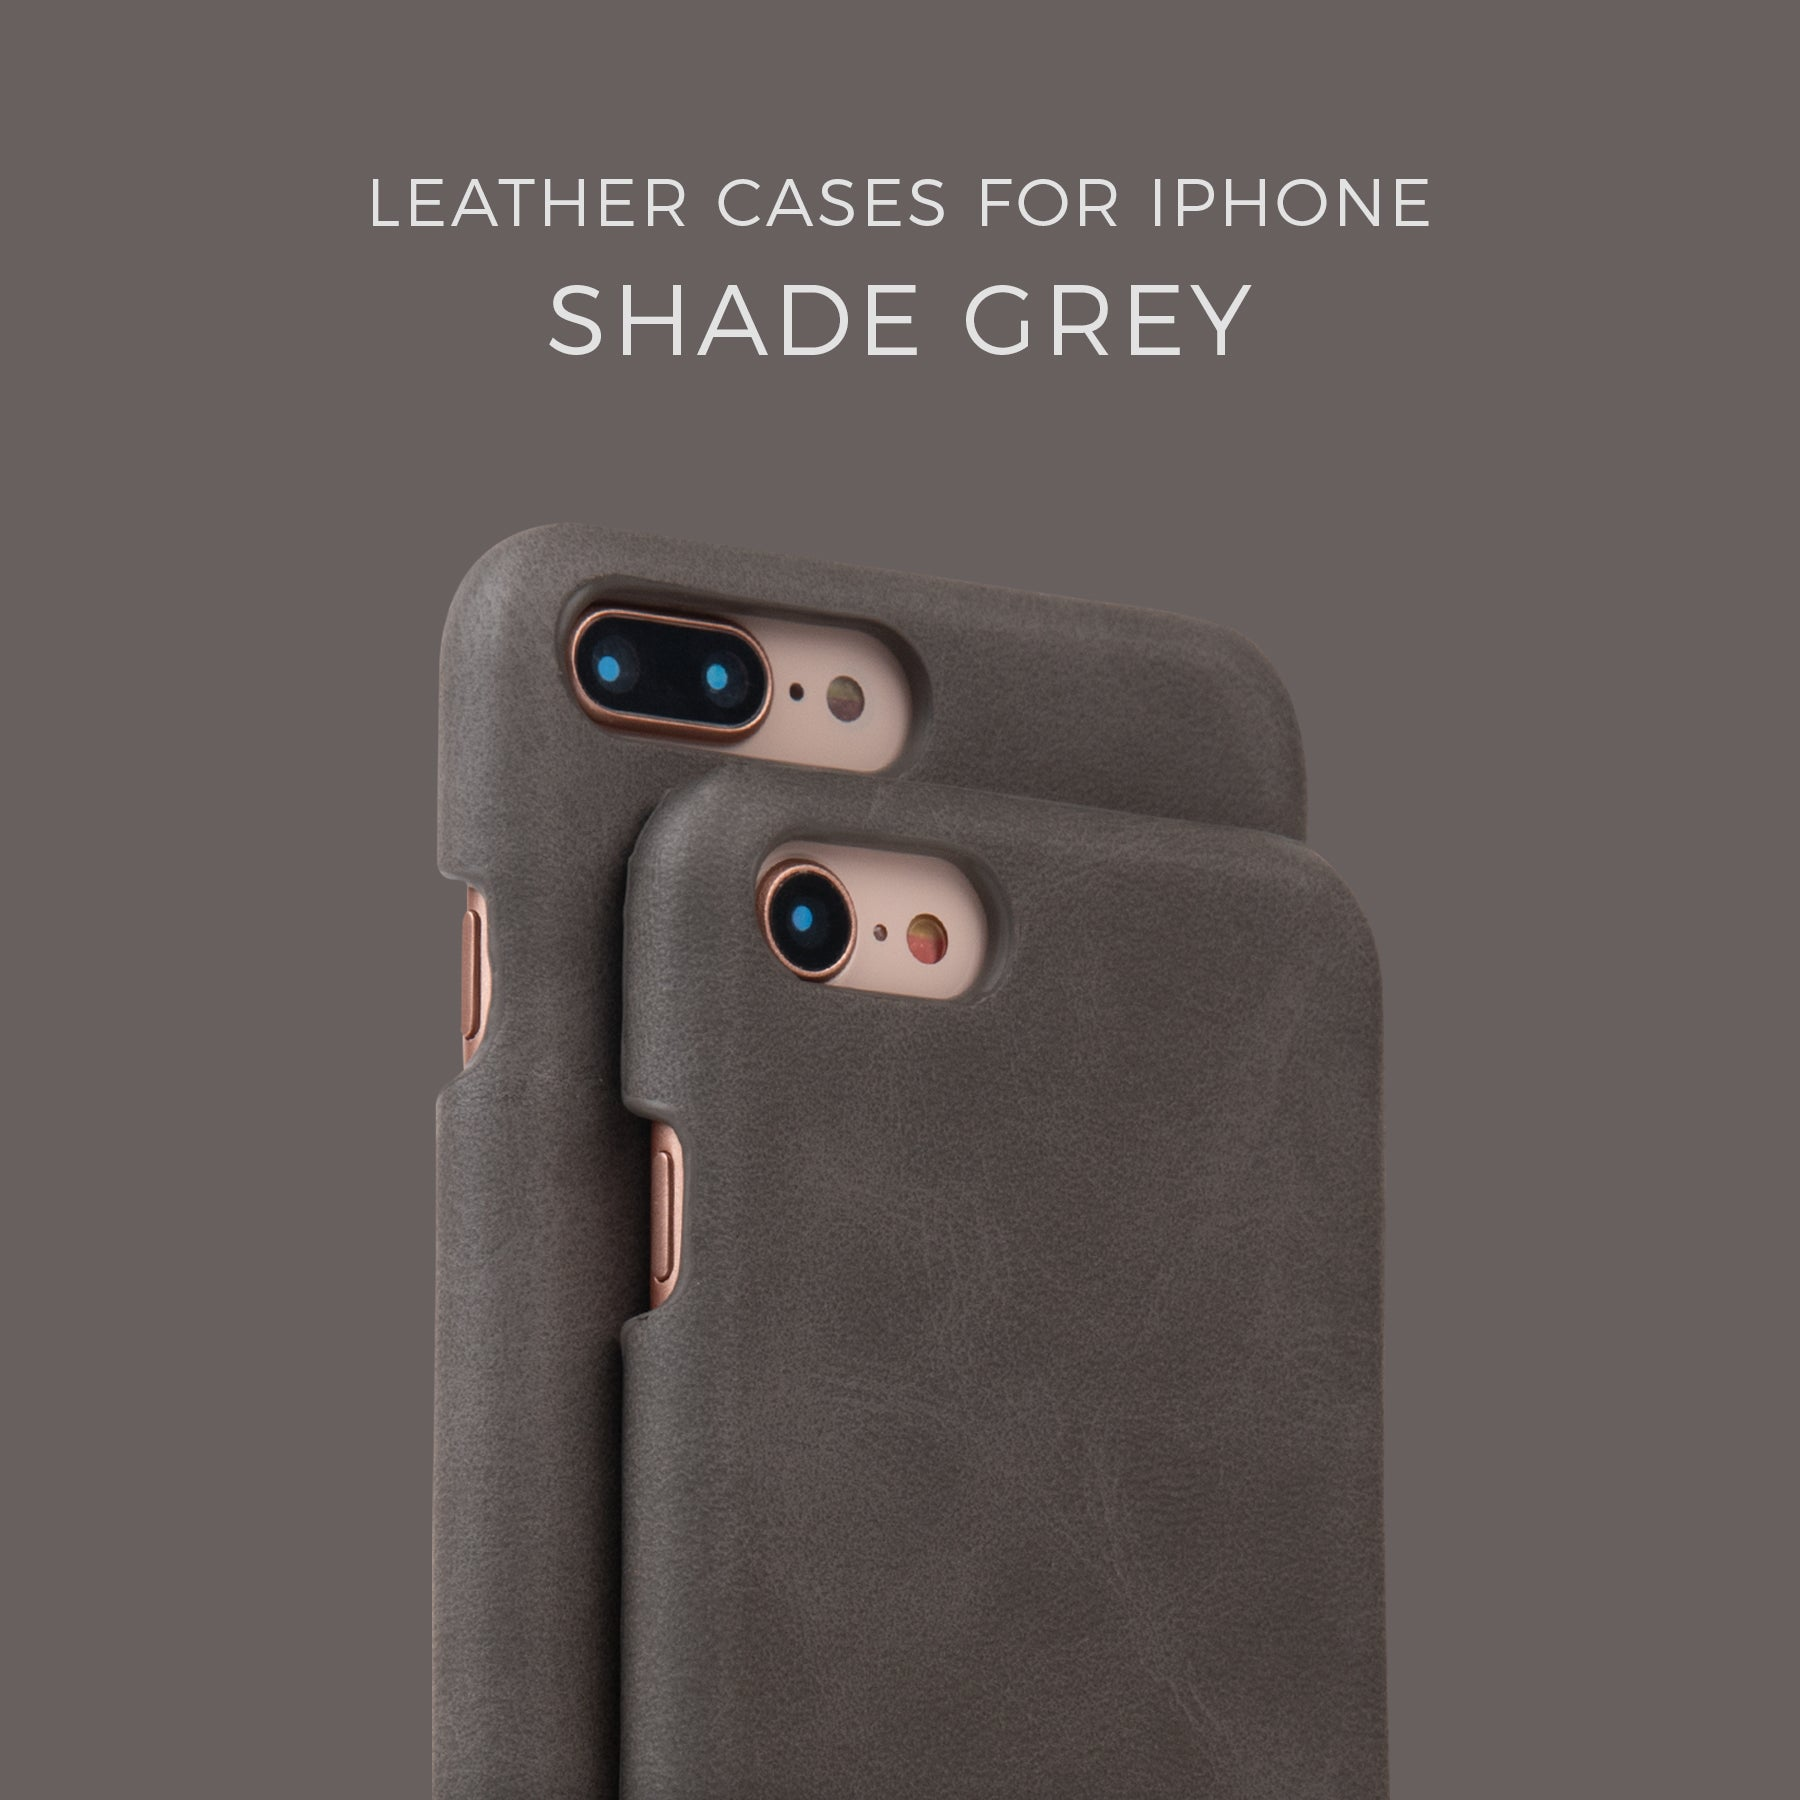 Shade Grey Leather Case